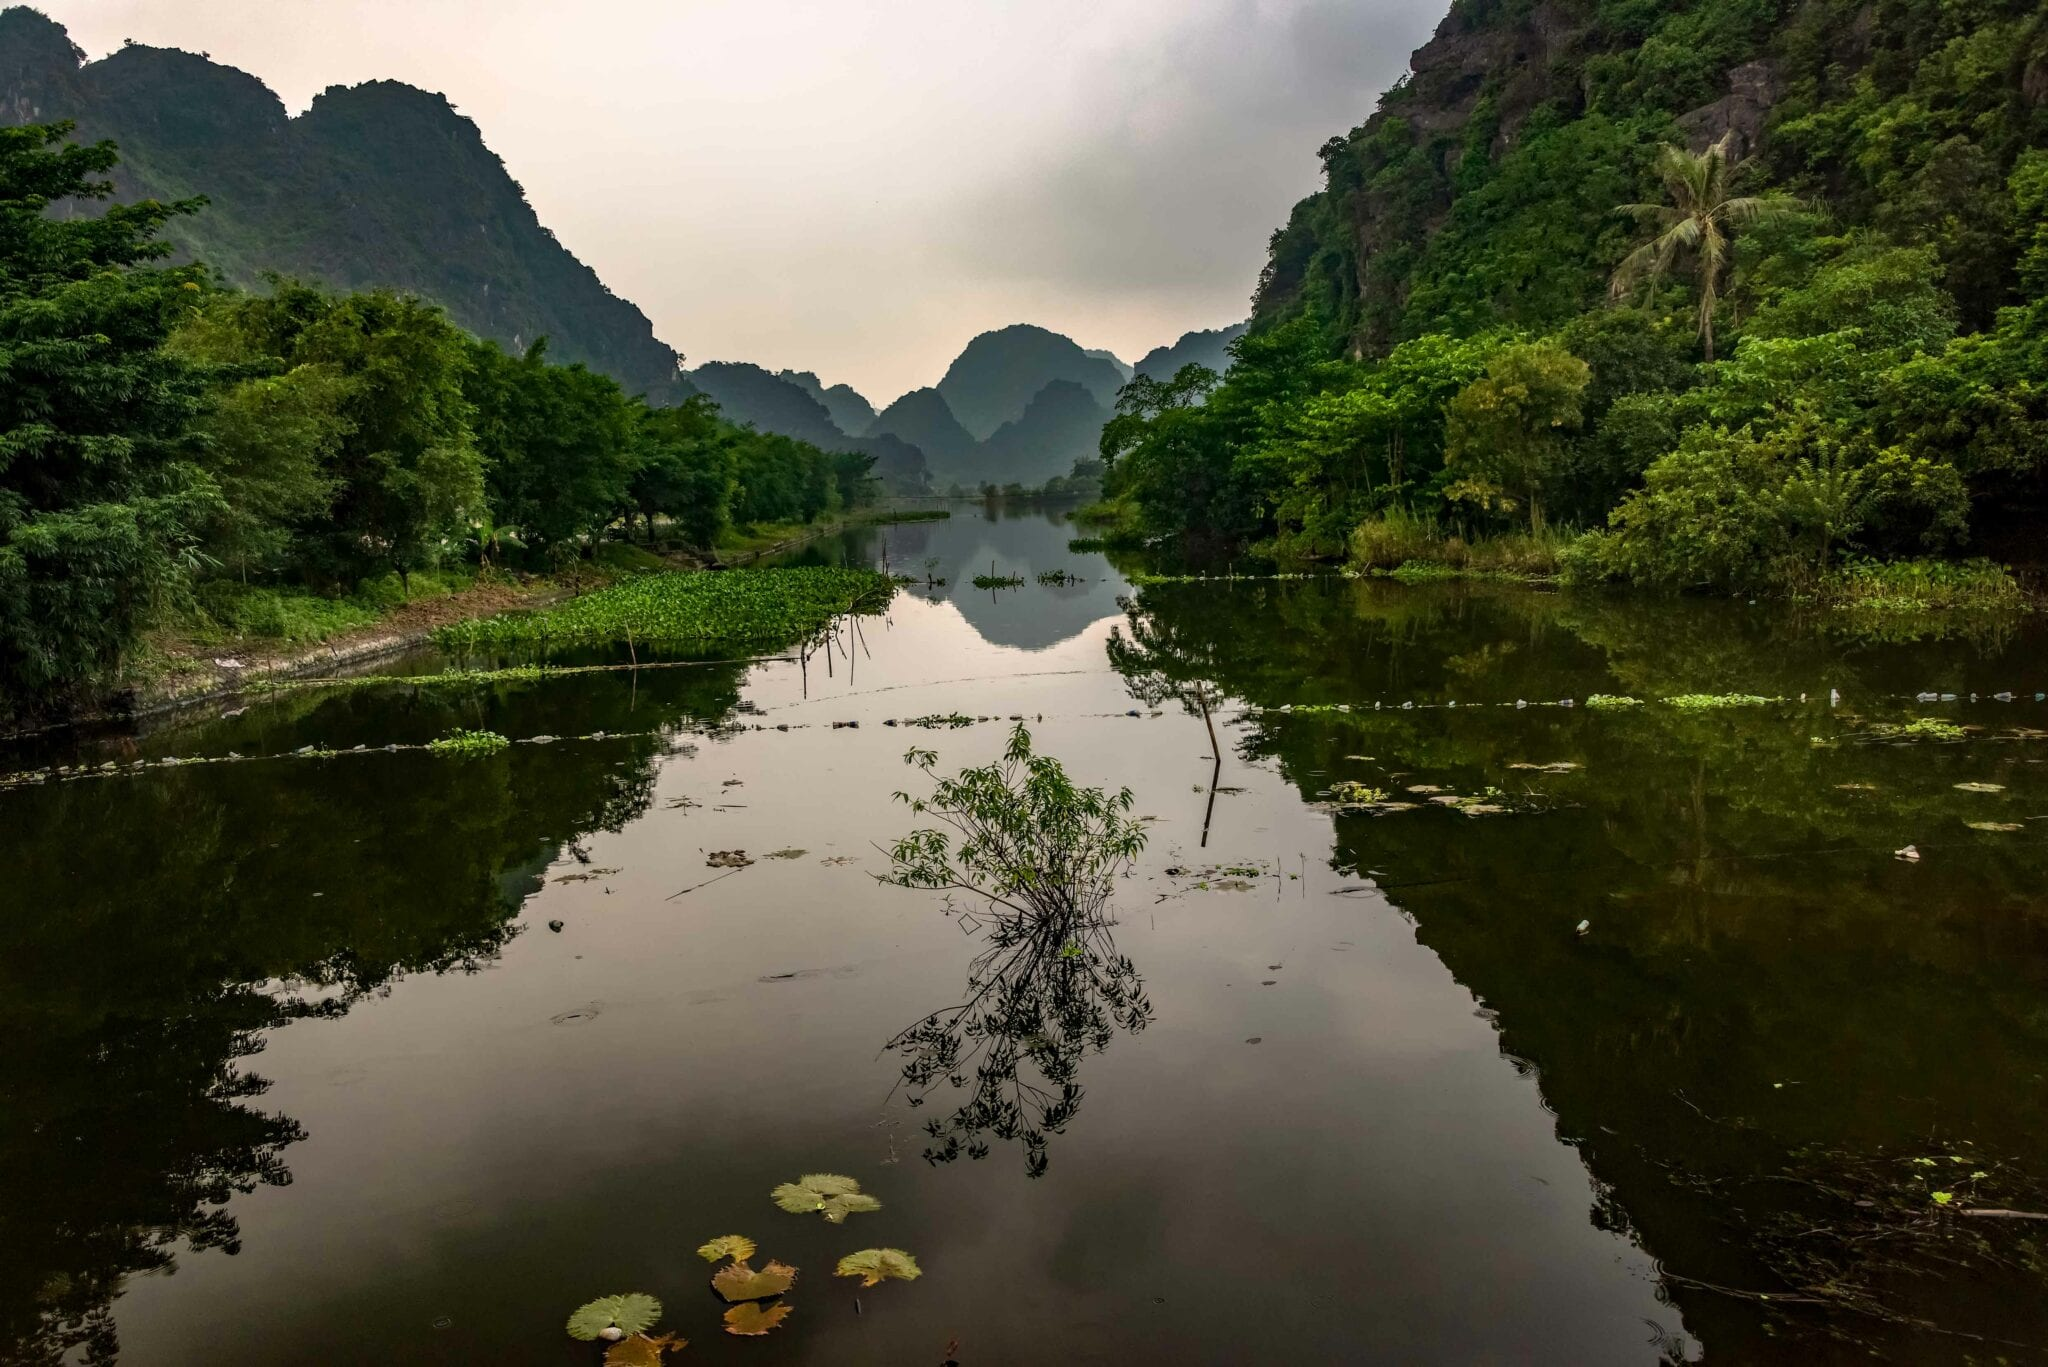 Image looking up the lake in Ba Bê National Park in Vietnam